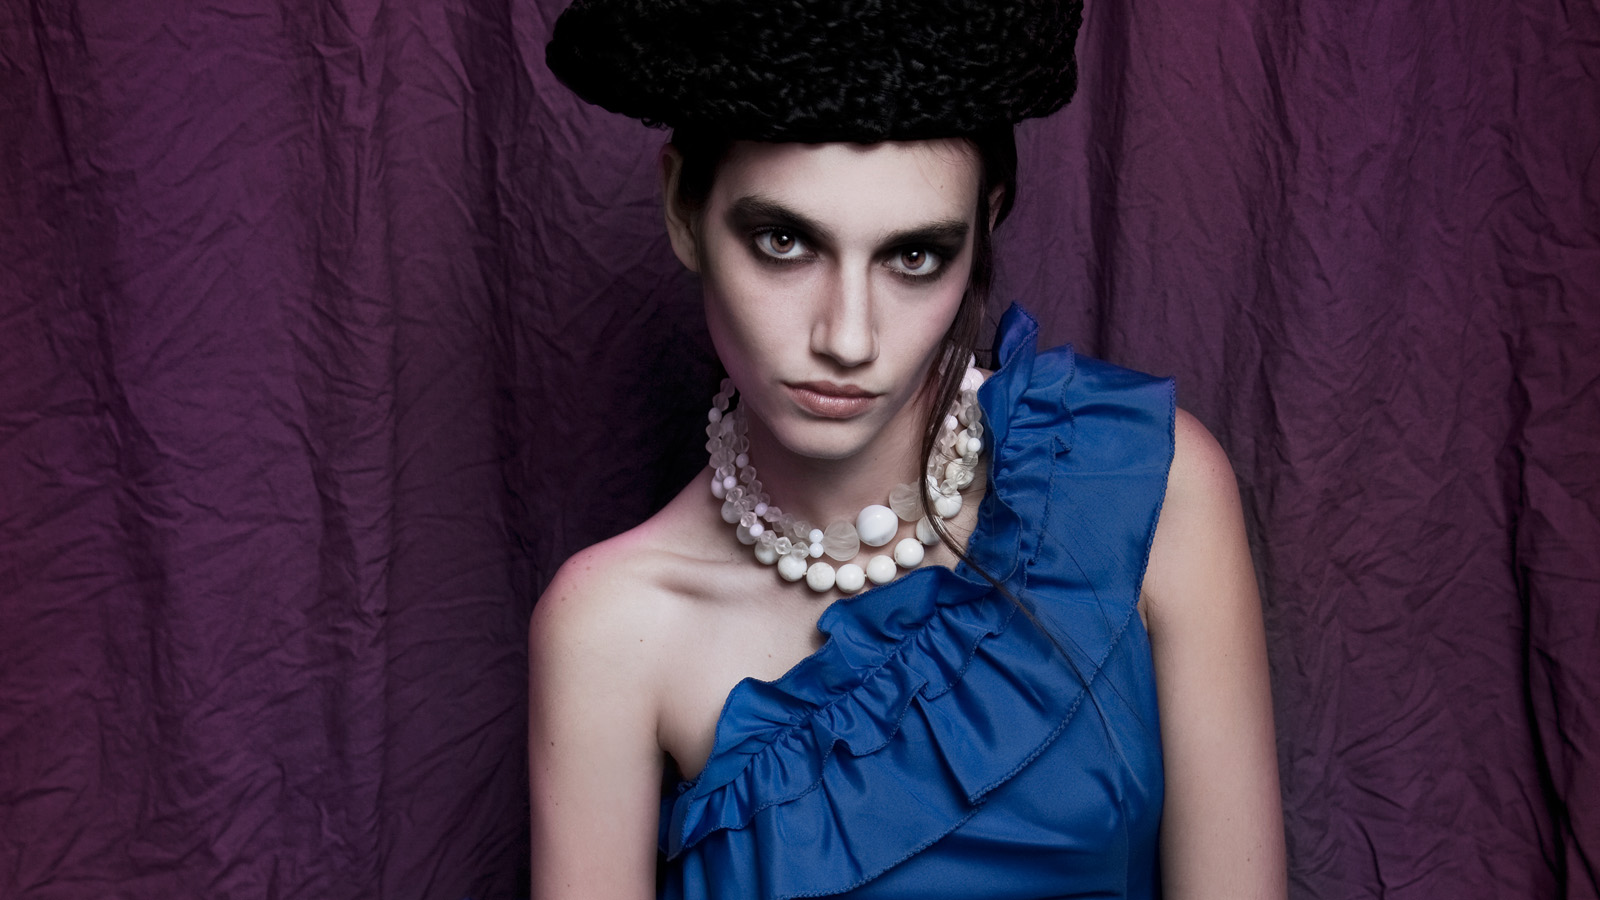 The Rabbit Hole vintage clothing Miami fashion editorial blue evening gown